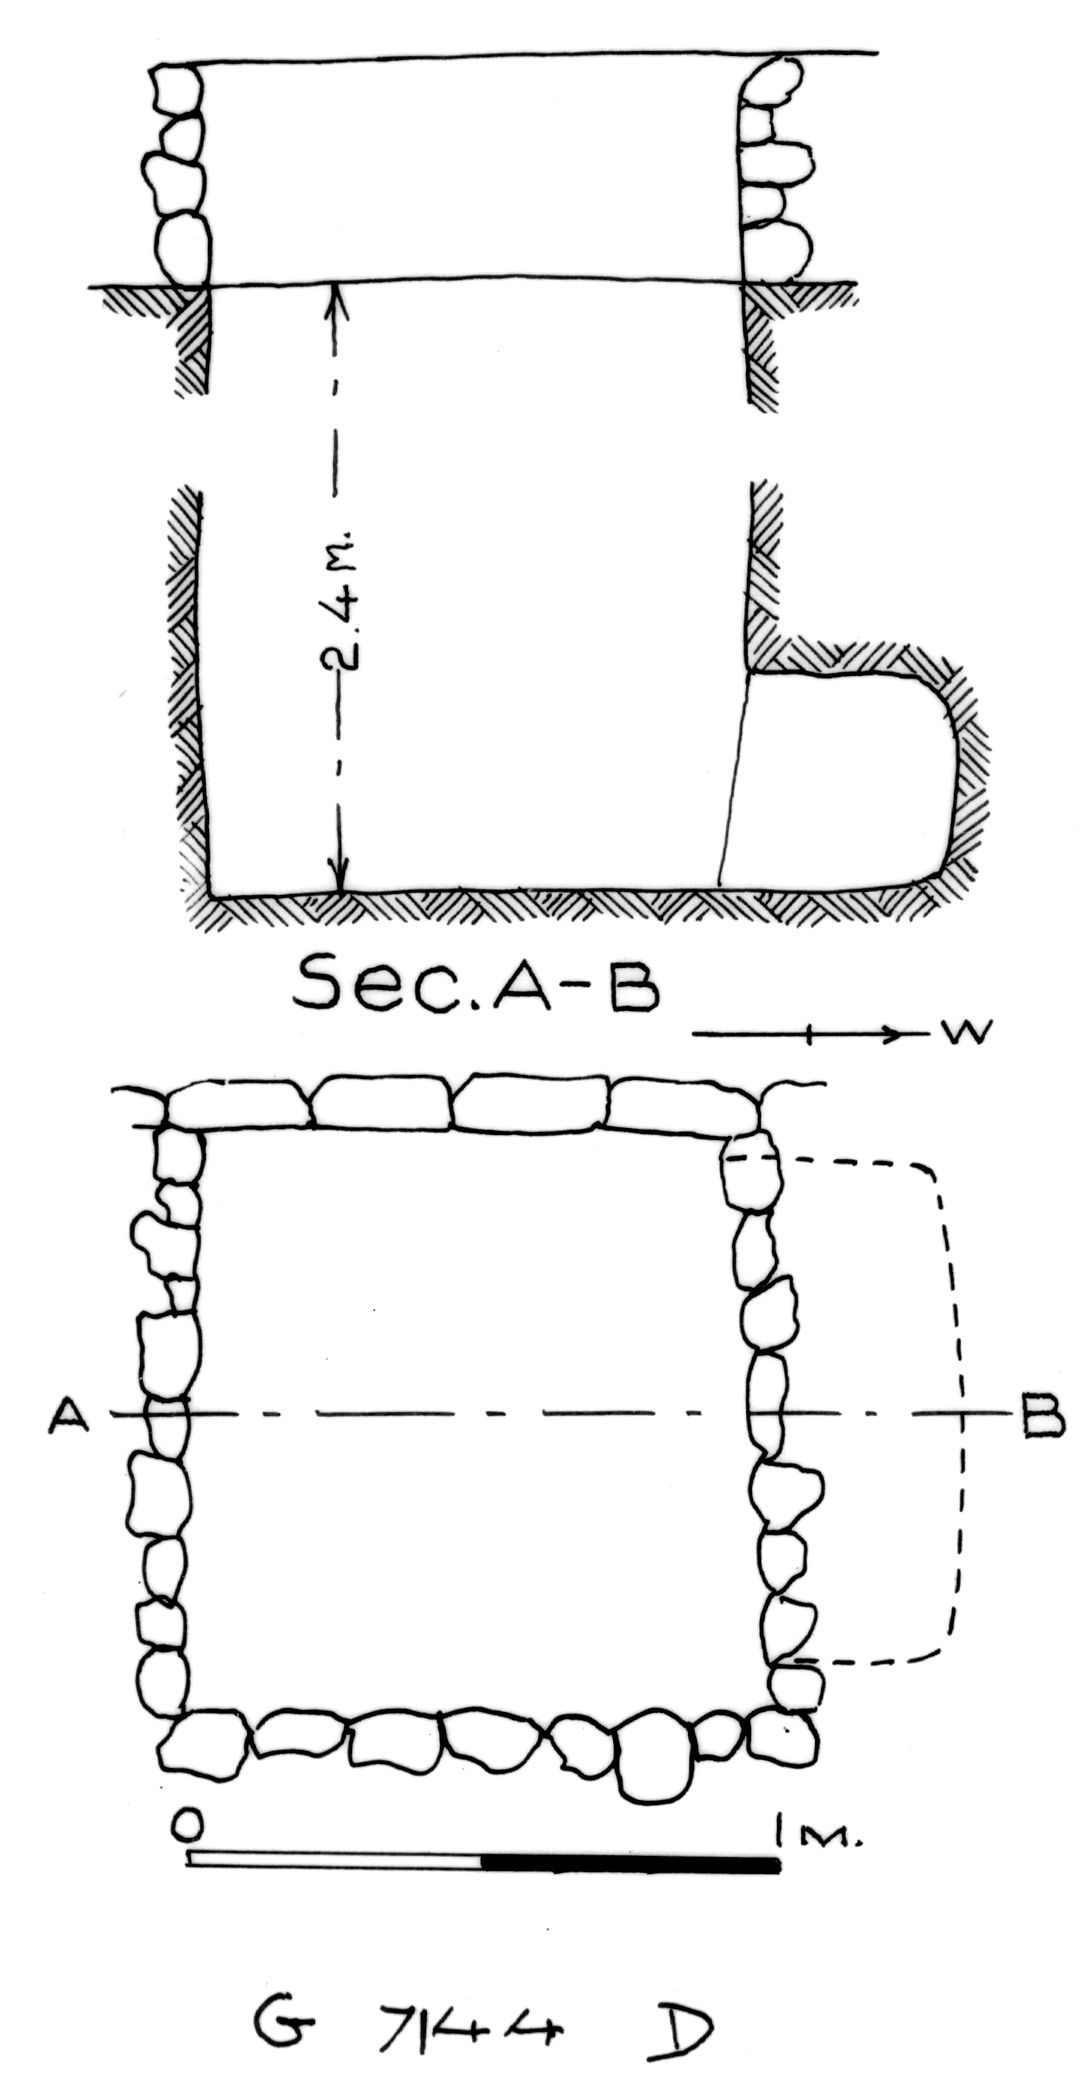 Maps and plans: G 7144, Shaft D